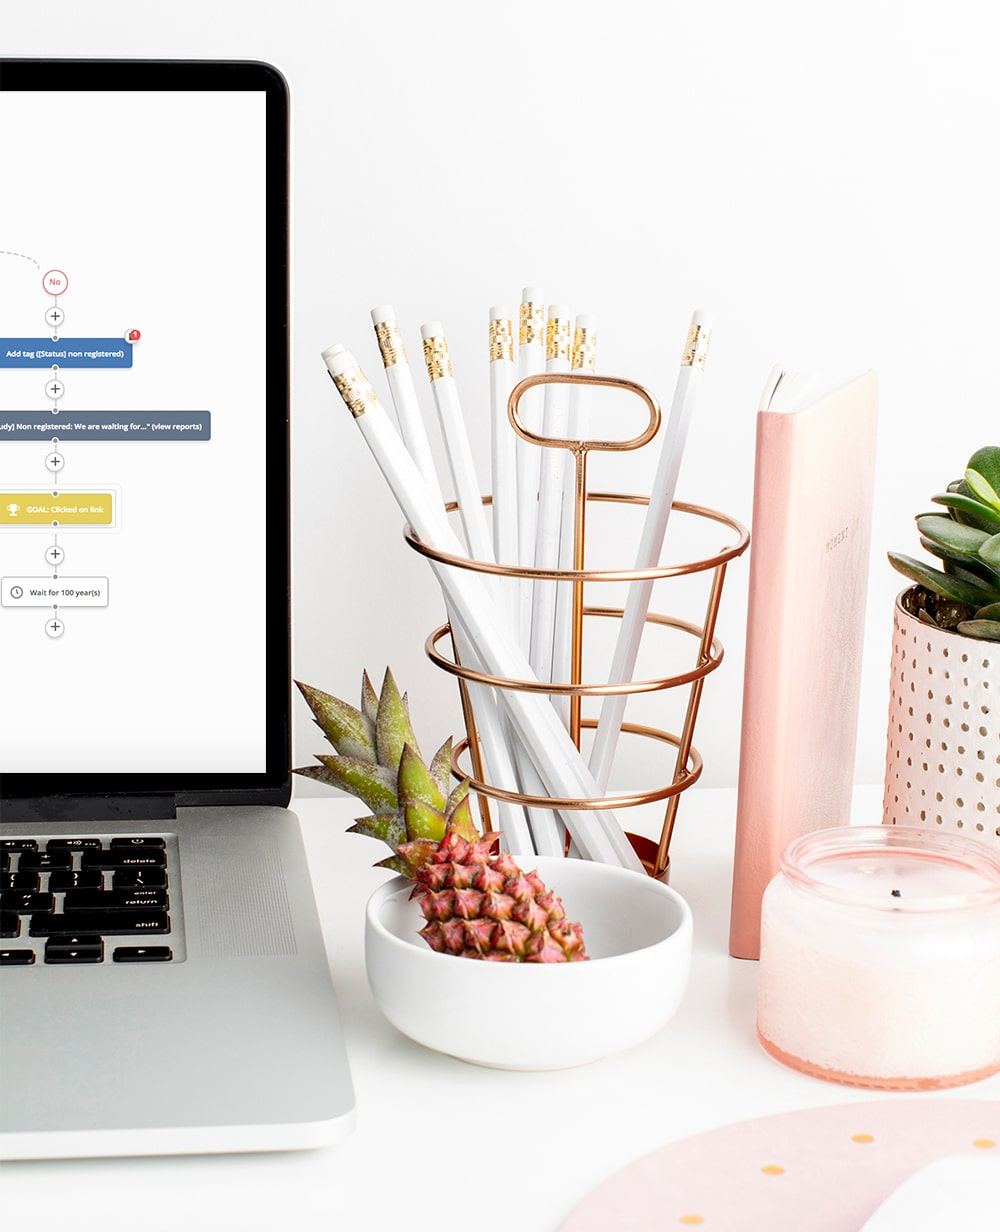 Ms Pollyanna | Desktop showing laptop, pencil holder with pineapple